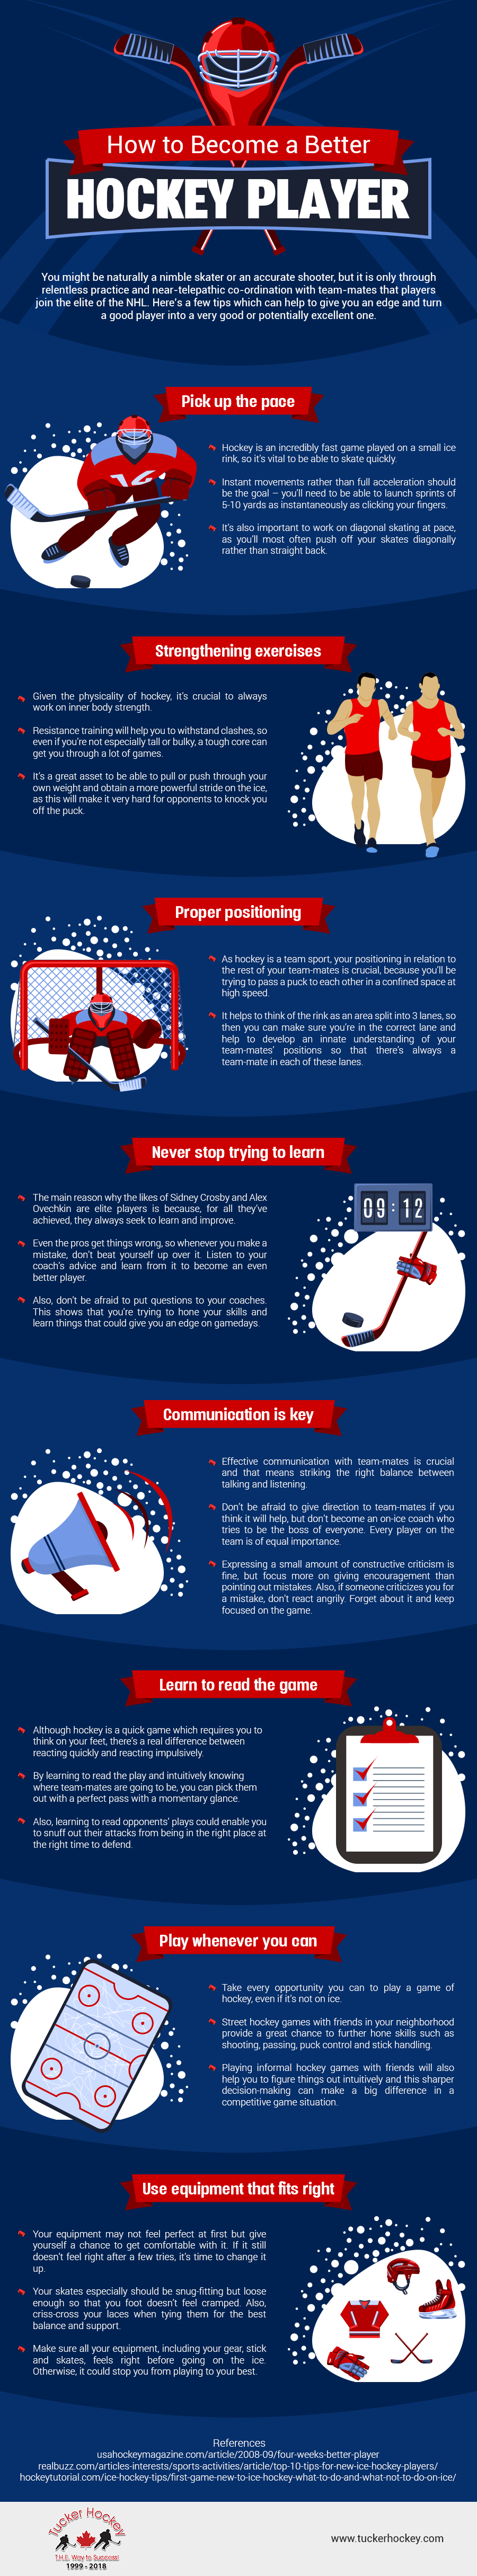 The Sports Archives Blog - The Sports Archives - How to Become a Better Hockey Player  Infographic